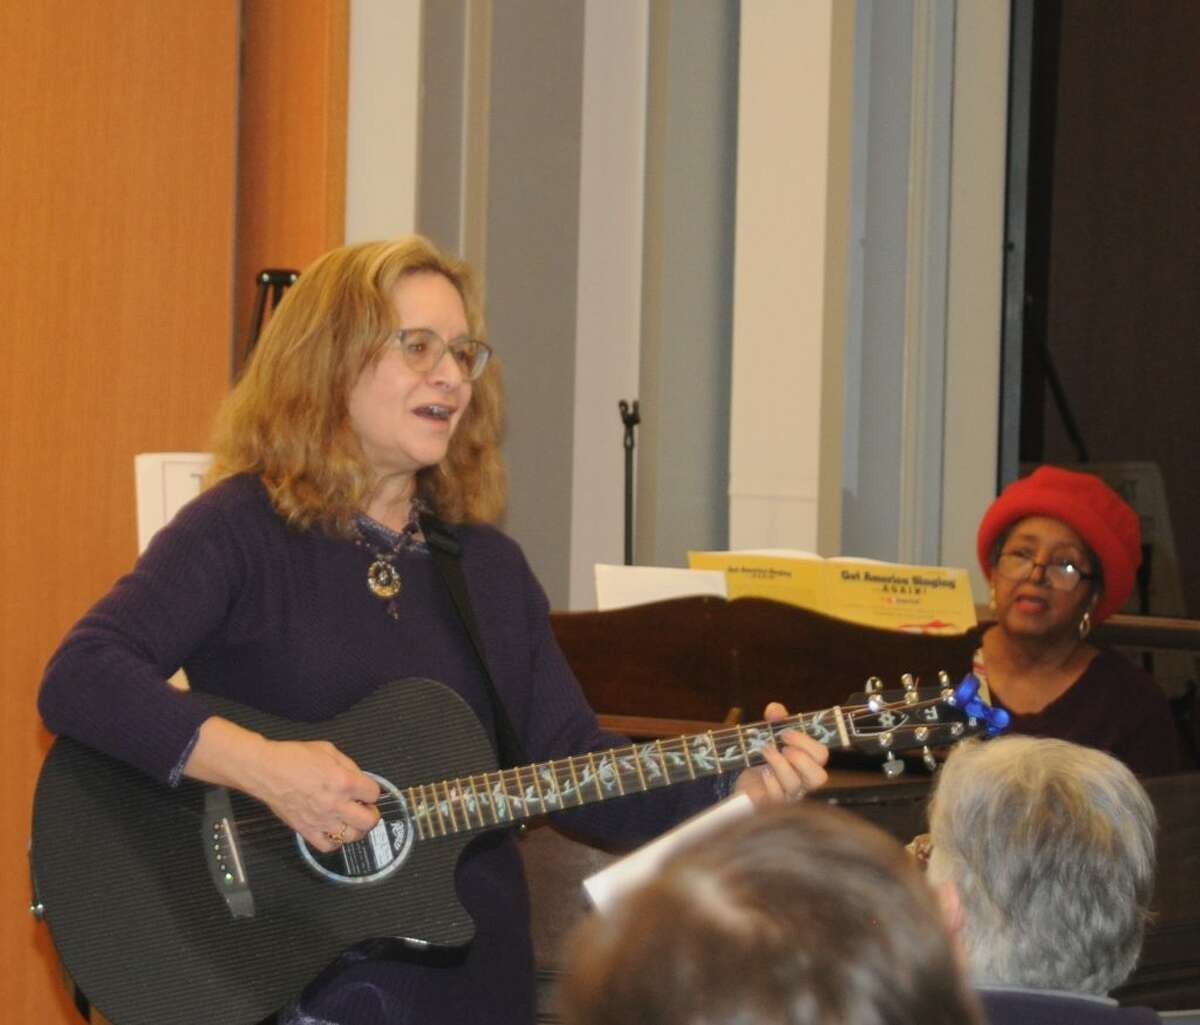 With Deborah Katchko-Gray on guitar and leading the vocals, and Gigi Van Dyke on piano, about 20 people who showed up at the Ridgefield Library had all the musical leadership they needed for a room-rocking community sing-along on Sunday, Dec. 16. Folks joined voices on songs ranging from The Beatles to Billy Joel to standards like Take Me Out to the Ballgame and Woody Guthrie's This Land is Your Land. Katchko-Gray, the cantor of Congregation Shir Shalom, has been organizing community sing-alongs for a couple of years now. The next one is Jan. 6 from 3:30 to 5 at the library. Songbooks with the words are provided, guitars and other instruments are welcome. - Macklin Reid photo